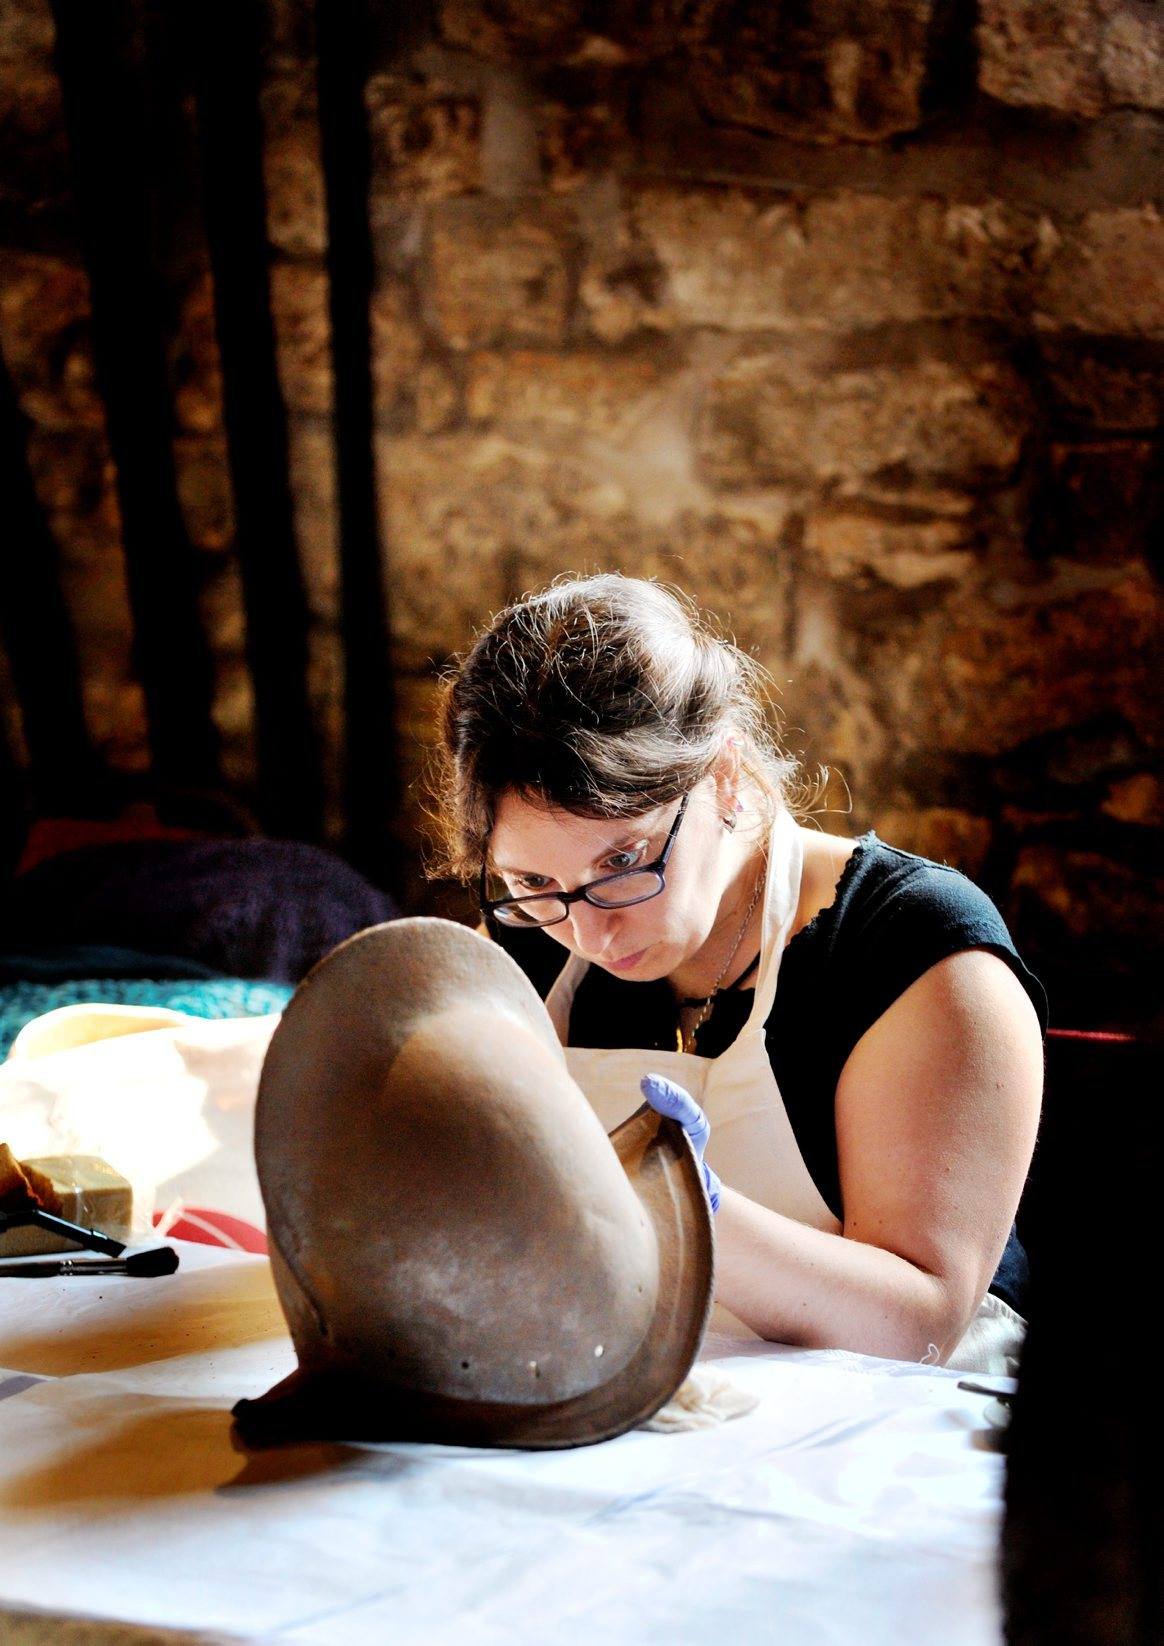 Conservator Pierrette Squires pictured cleaning armour, a pikeman's corselet and helmet from around 1620 at Smithills Hall